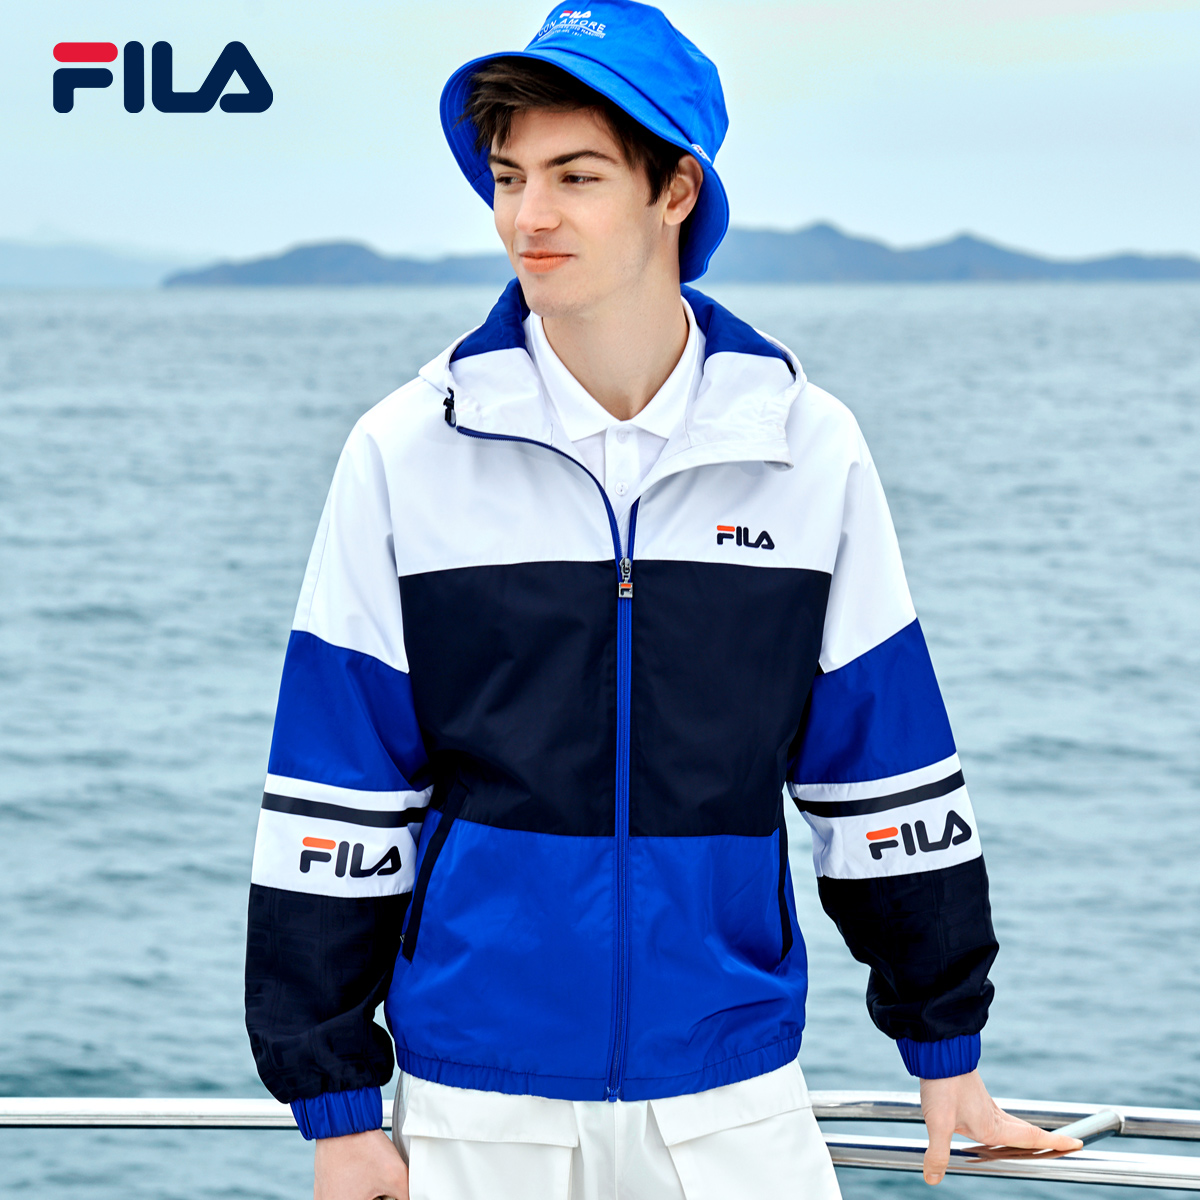 FILA FILA official men's tatting jacket coat 2020 spring new leisure fashion loose top men